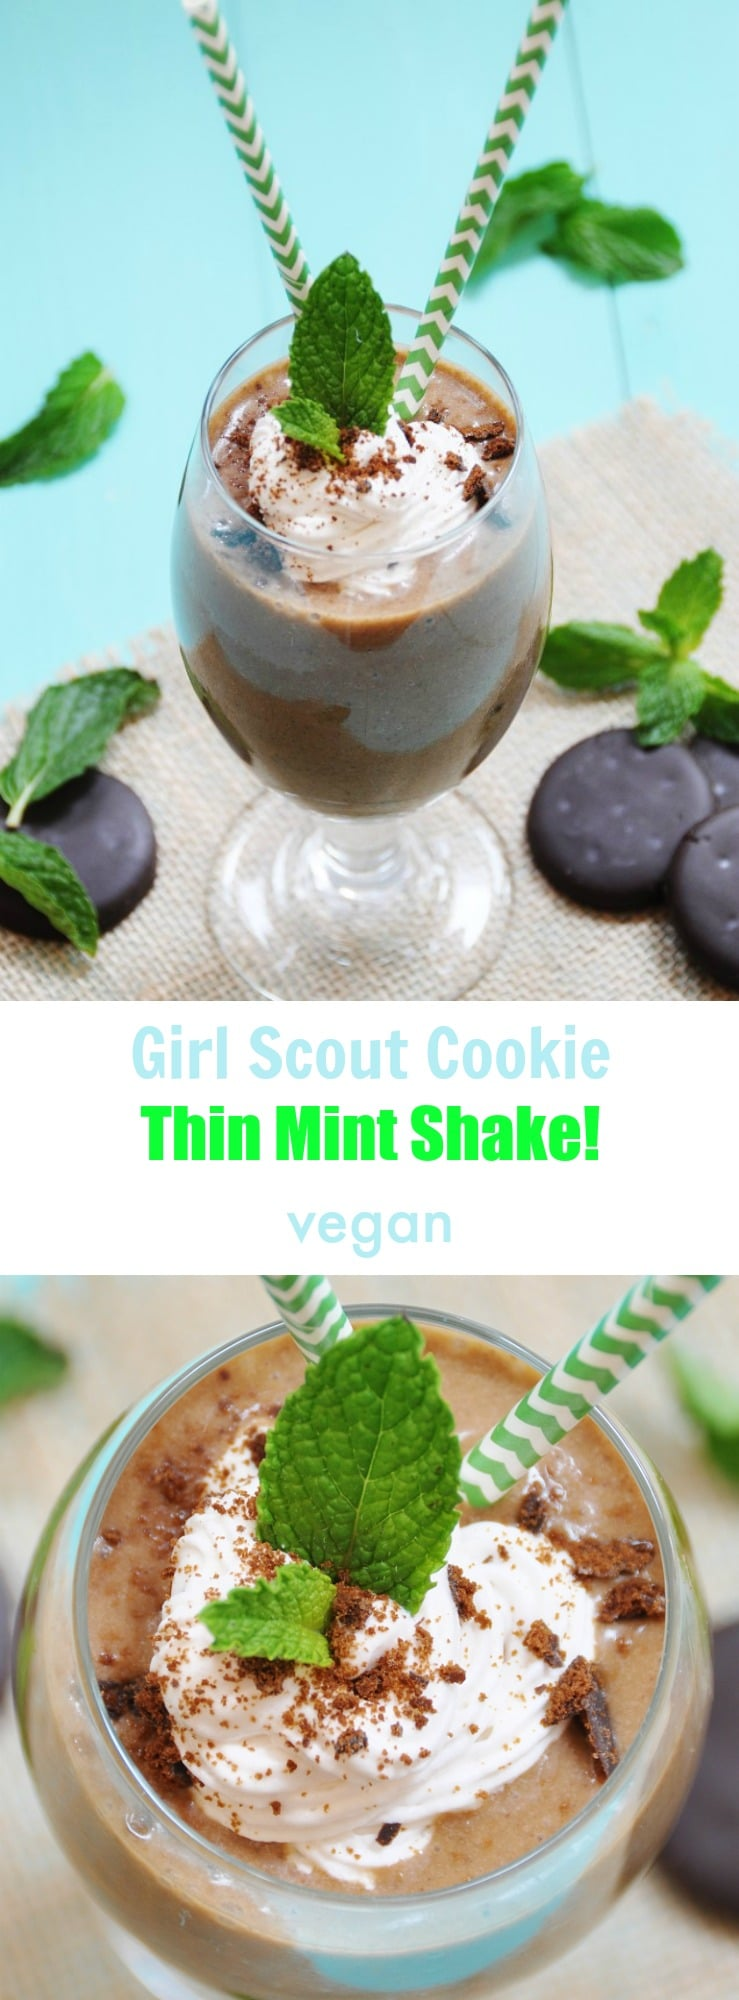 Vegan Girl Scout cookie shake made with thin mint cookies! The perfect dairy-free milkshake dessert!